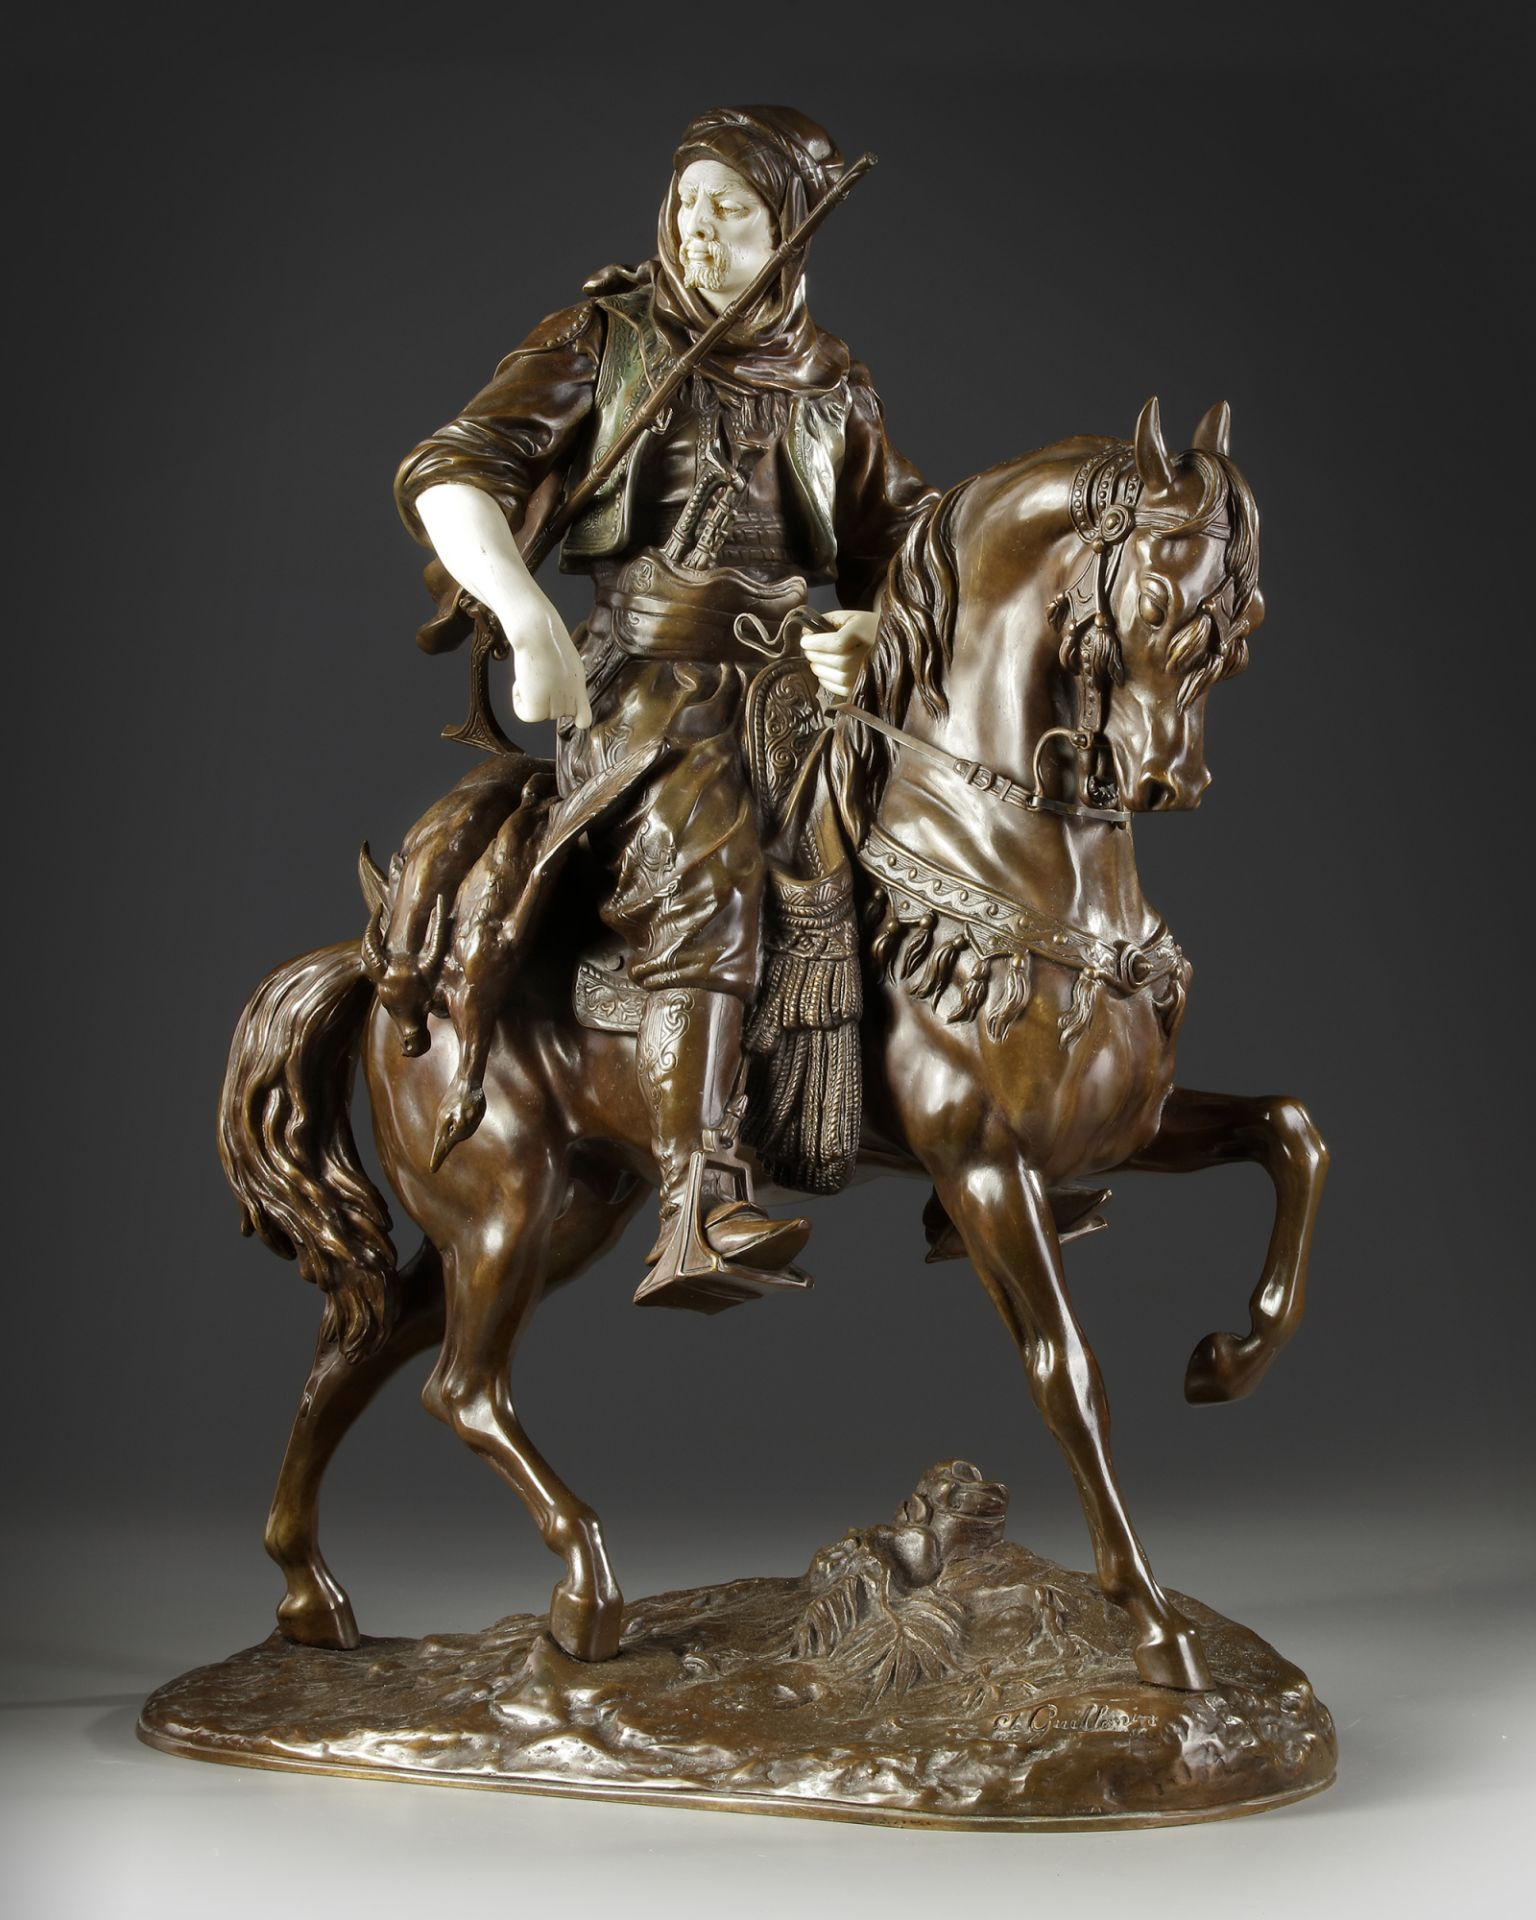 A SUPERB BRONZE SCULPTURE BY ALFRED BARYE AND EMILE GUILLEMIN, 19TH CENTURY - Image 2 of 7